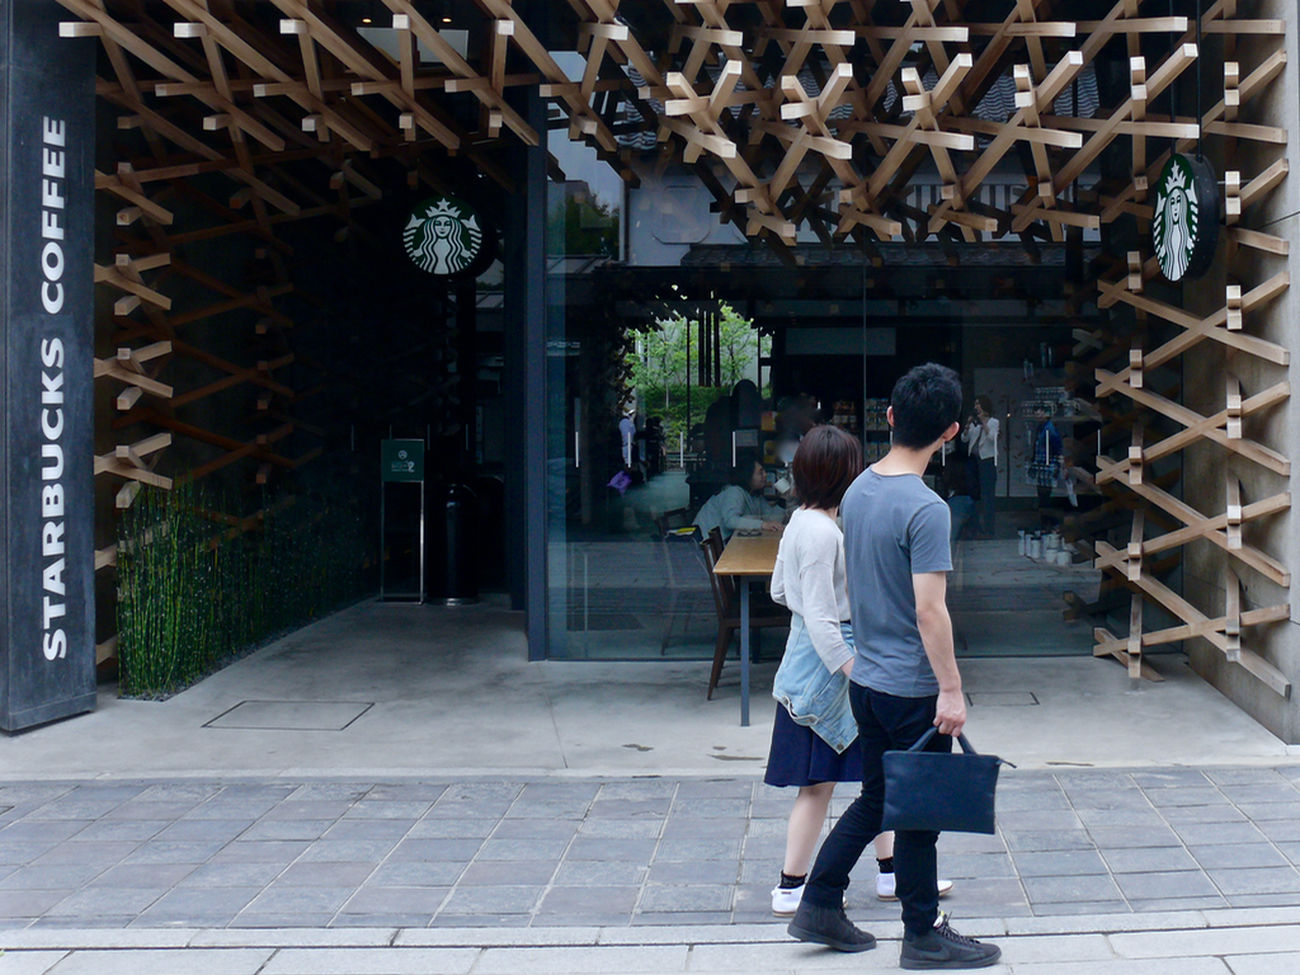 Reedit Photos(iMac) : Starbacks coffee Dazaifutenmangu Omotesando, Fukuoka prefecture. 35mm A Frame Within A Frame Architecture Built Structure Couple Discover Kyushu, Japan Futari Kuma Kengo LEICA V-LUX1 May 2015 On The Street One Shot Story Project. Sidewalk Starbacks Coffee Streetphoto_color Streetphotography Timberwork Walking Around The City  Wooden Frame ふたり 太宰府天満宮 福岡県 表参道 隈研吾